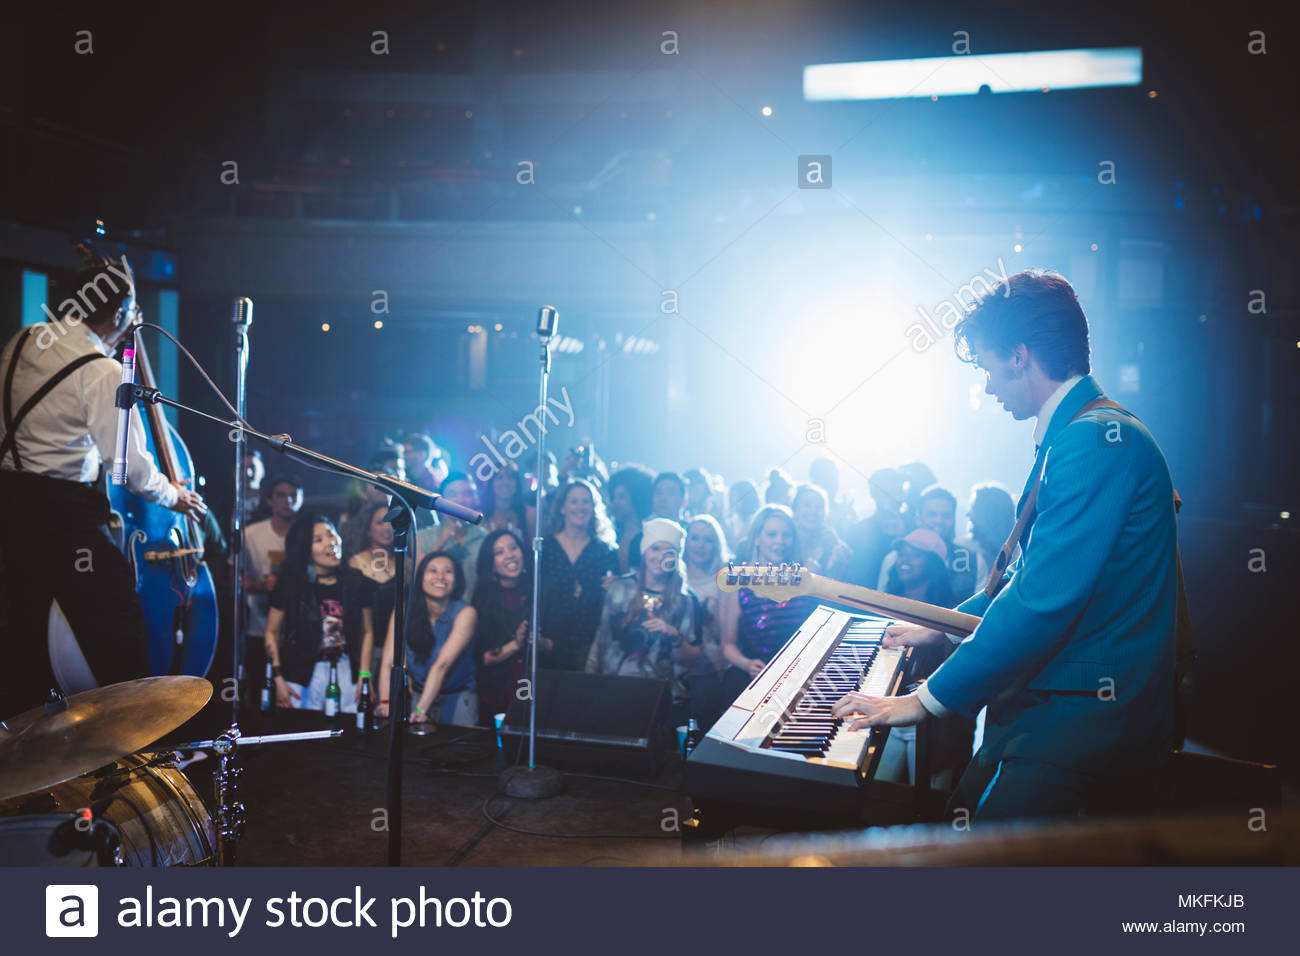 Rockabilly musicians performing on stage at music concert - Stock Image